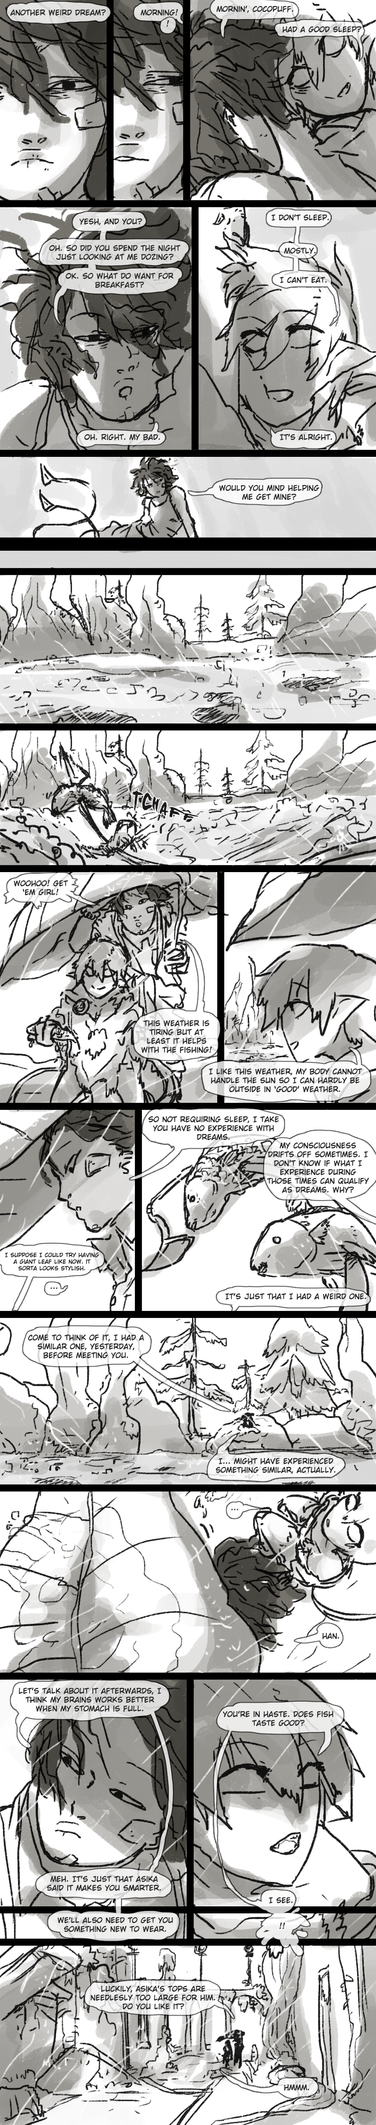 Afo - Page 13-16 by honeyOdew